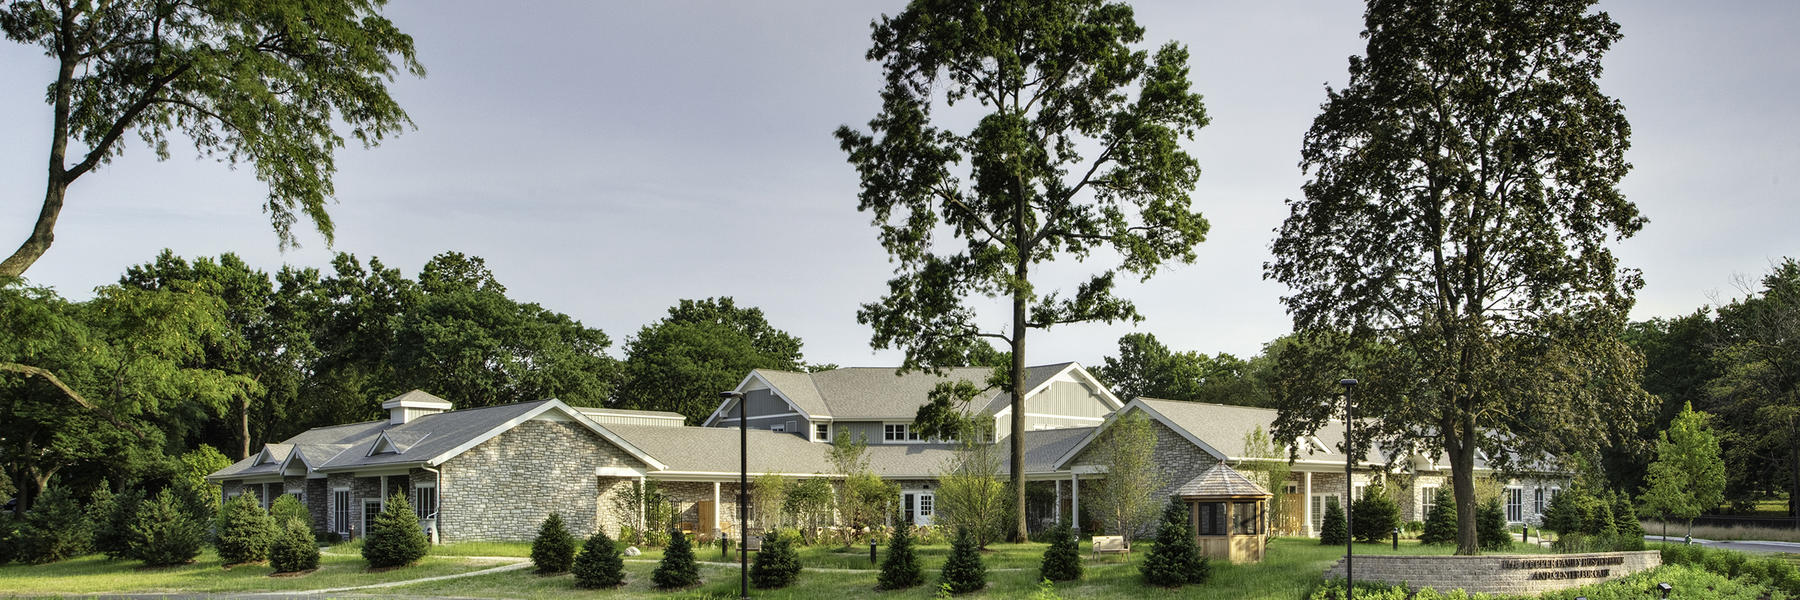 Senior Living & Retirement Community Construction Examples